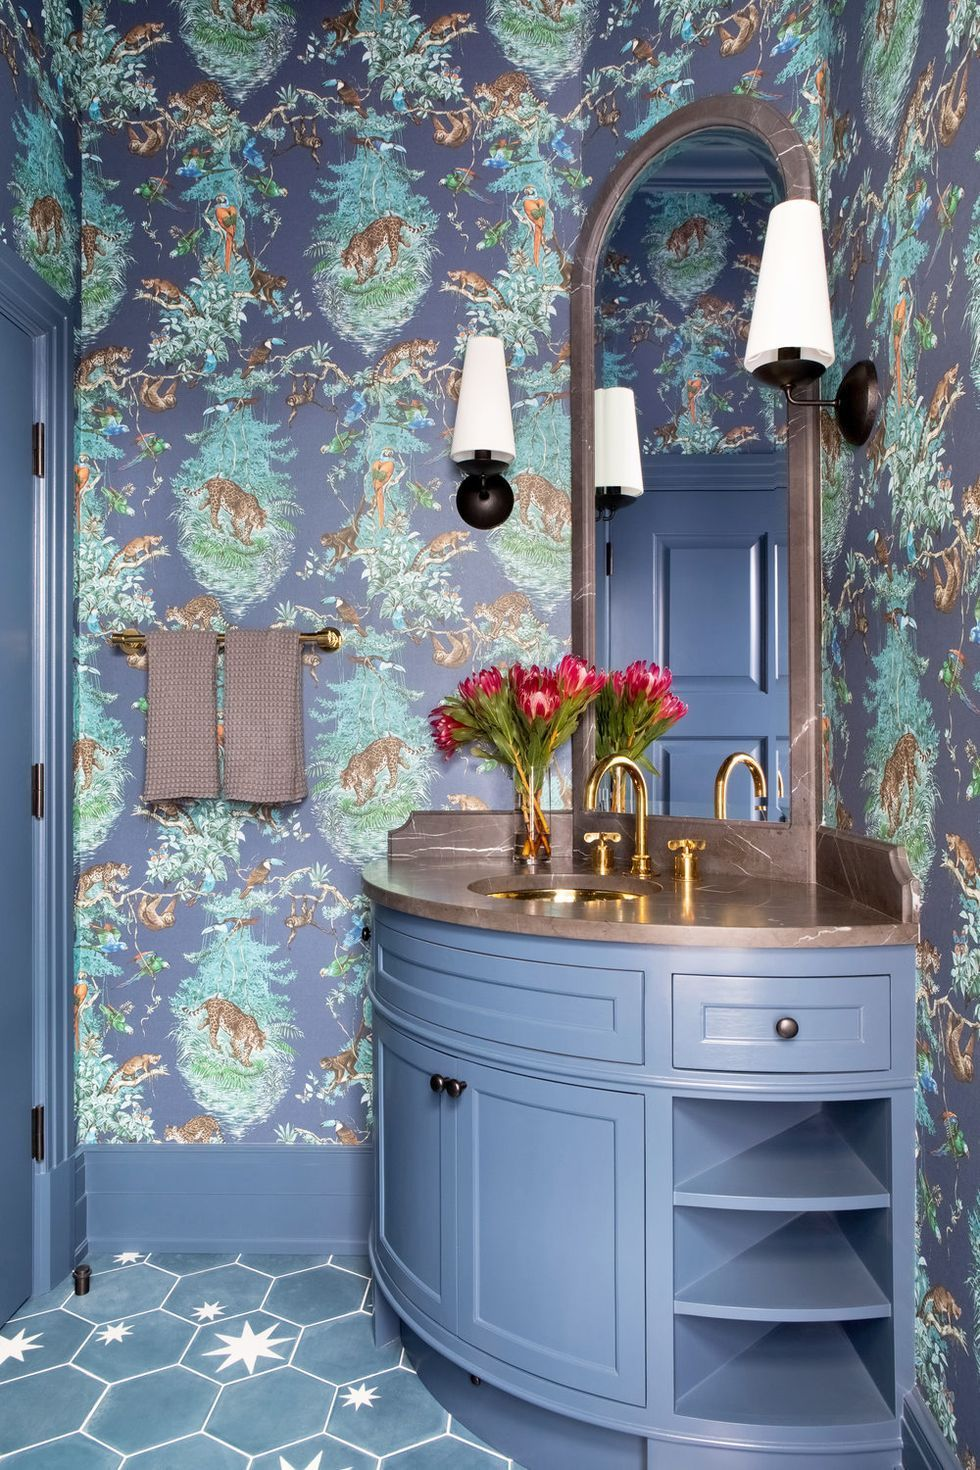 11 Small Bathroom Design Ideas - Small Bathroom Solutions